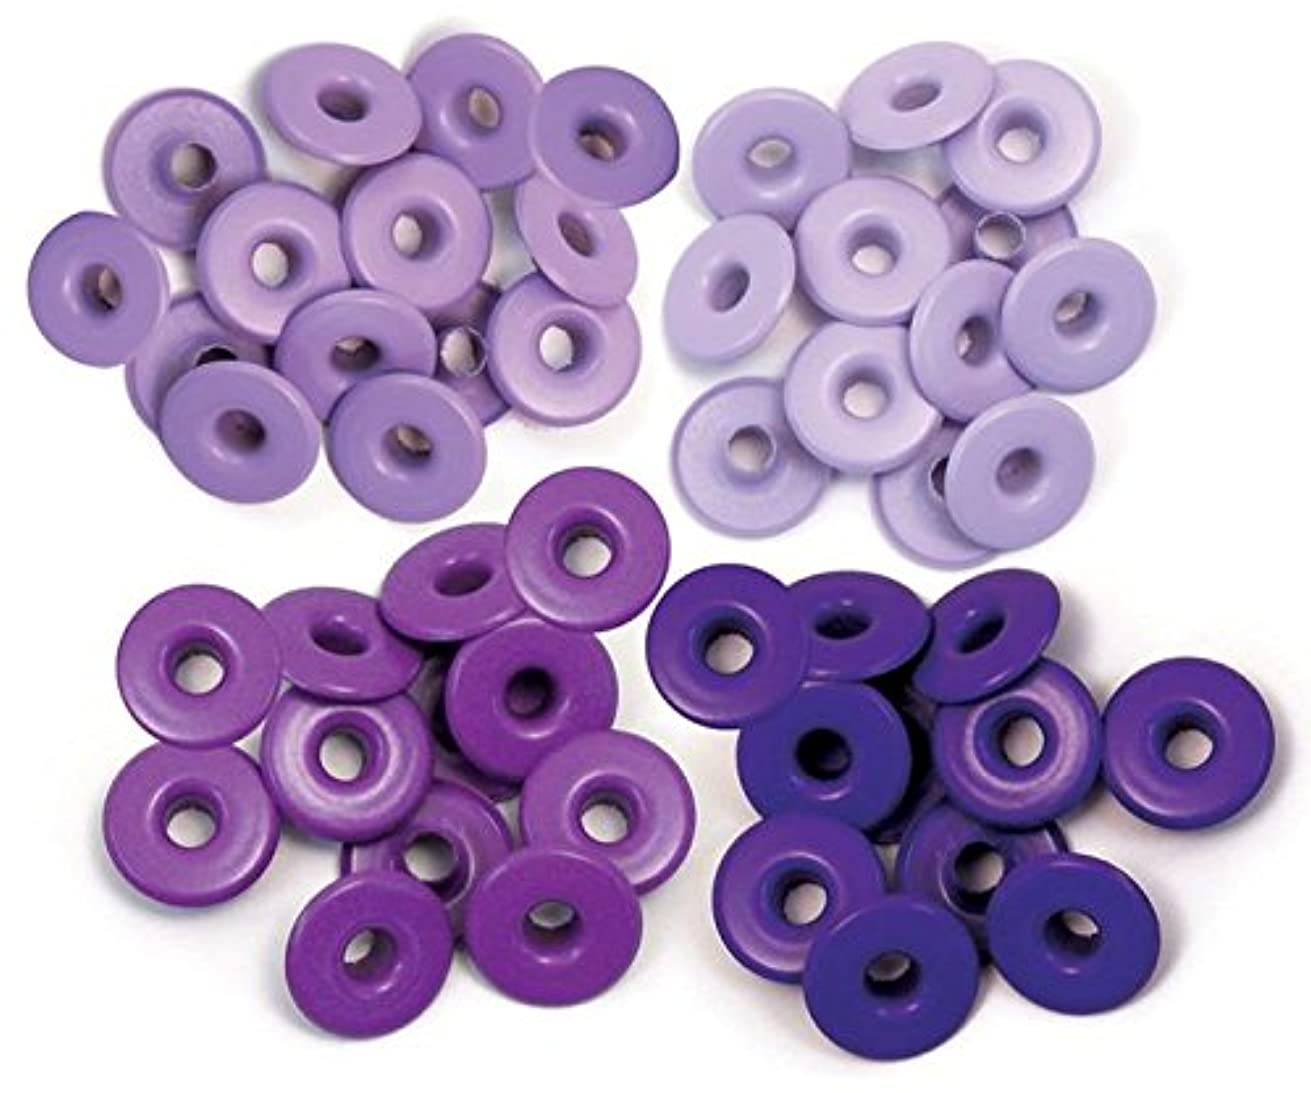 We R Memory Keepers 41591-6 Eyelets for Scrapbooking, Wide, Purple